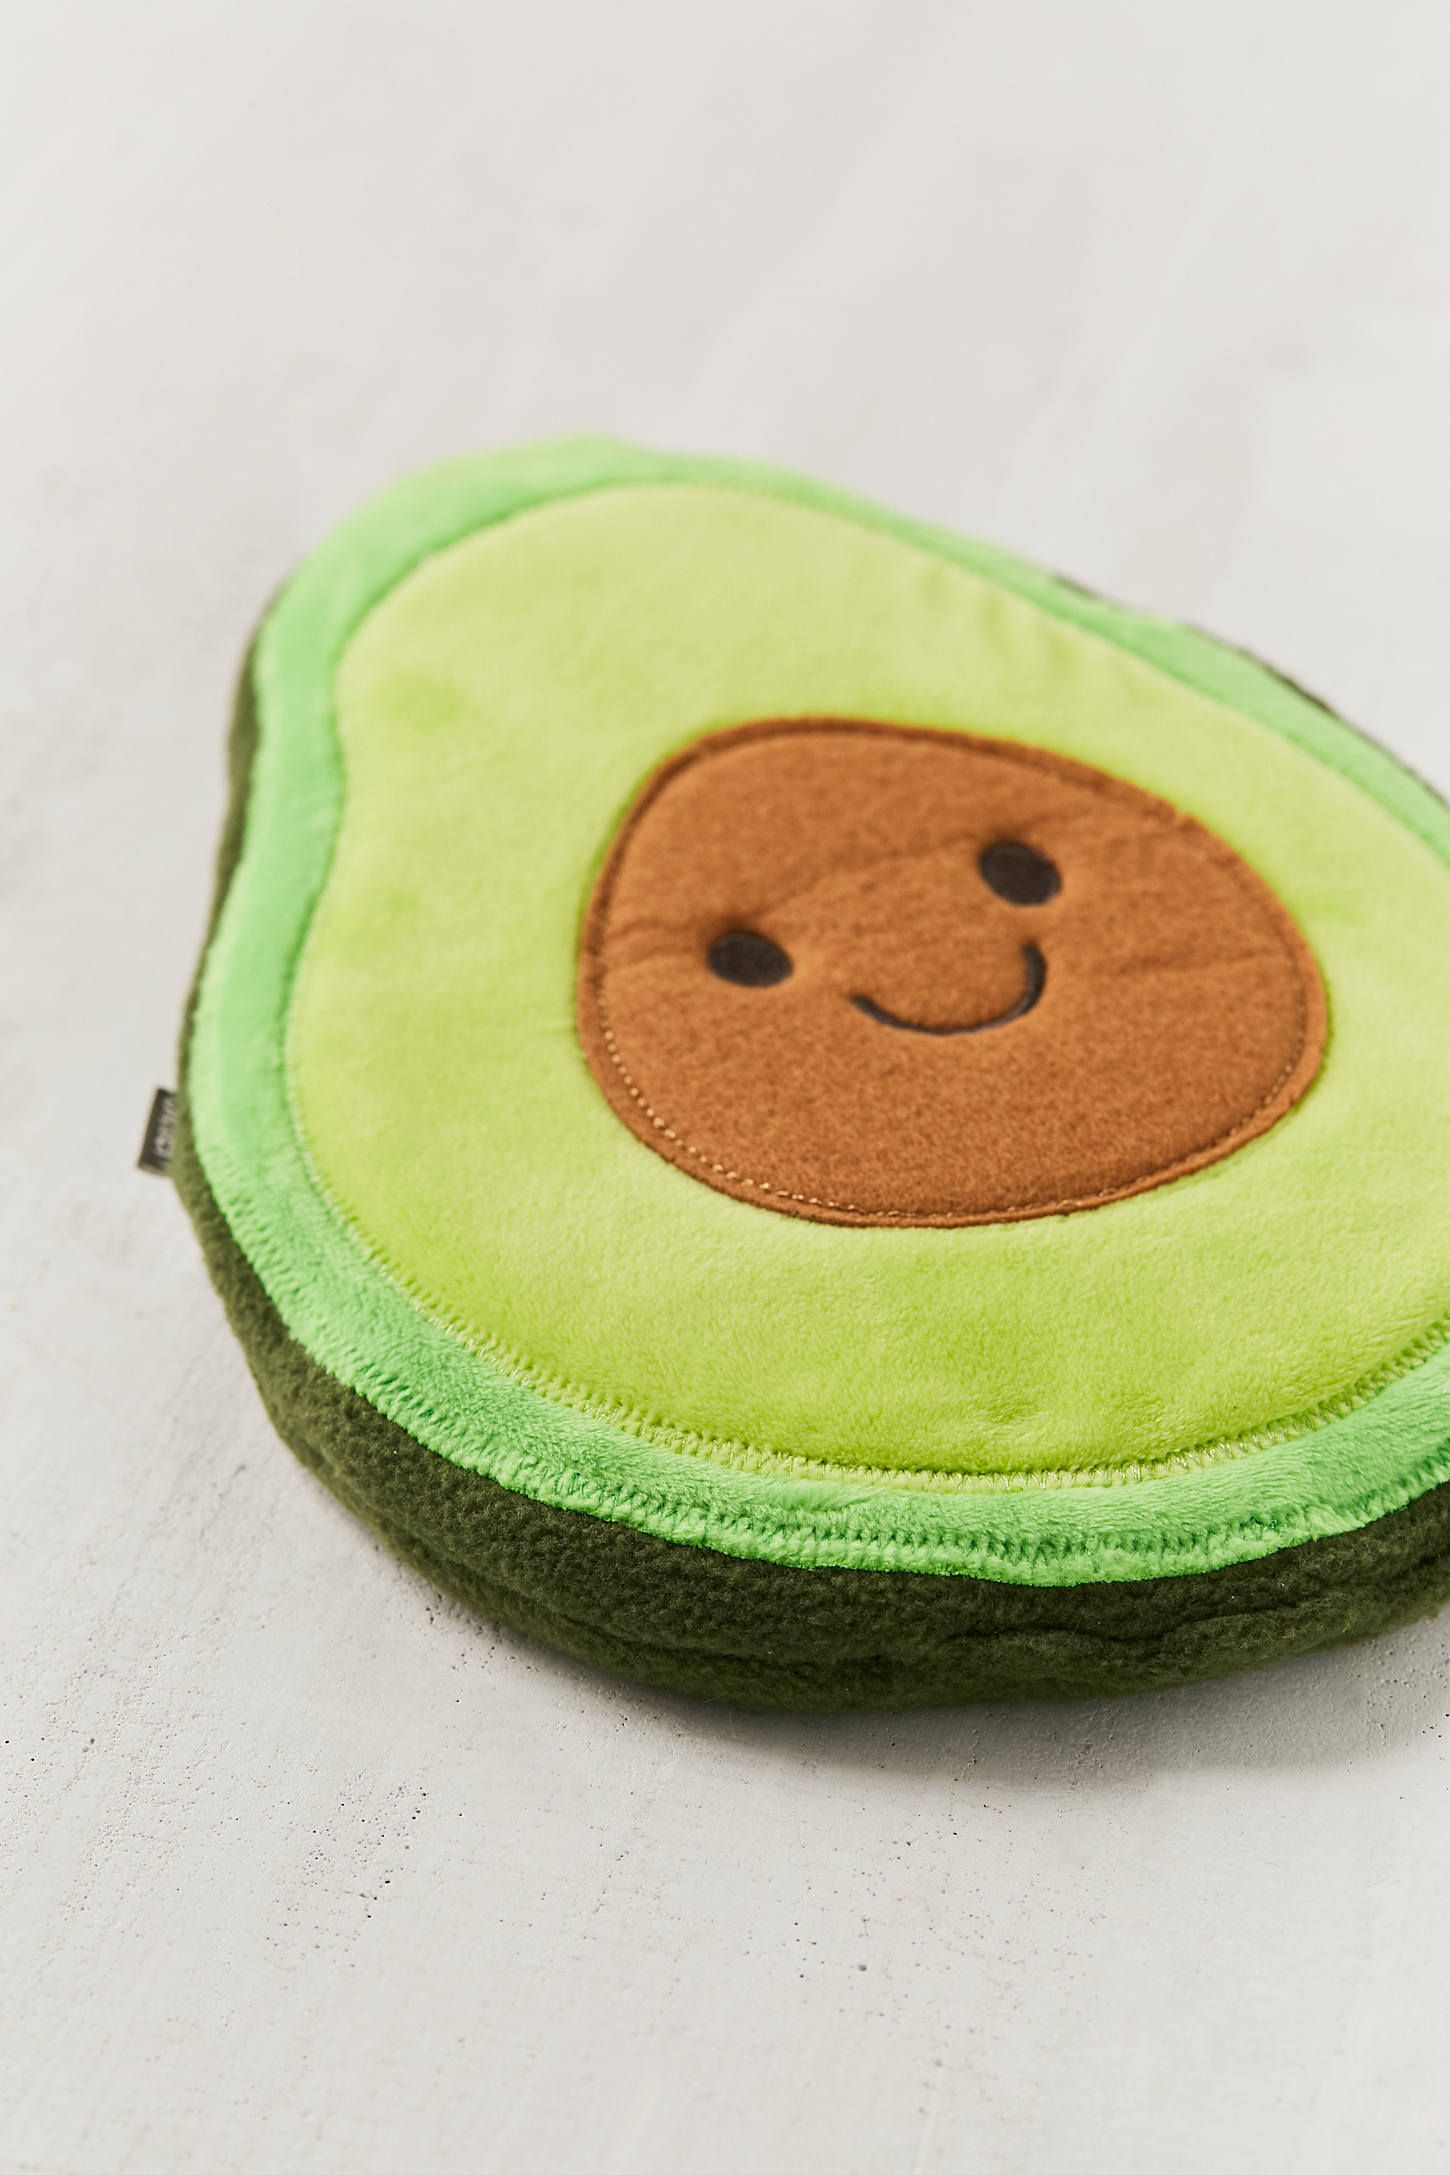 Huggable Avocado Cooling Heating Pad Nutrition Benefits Of